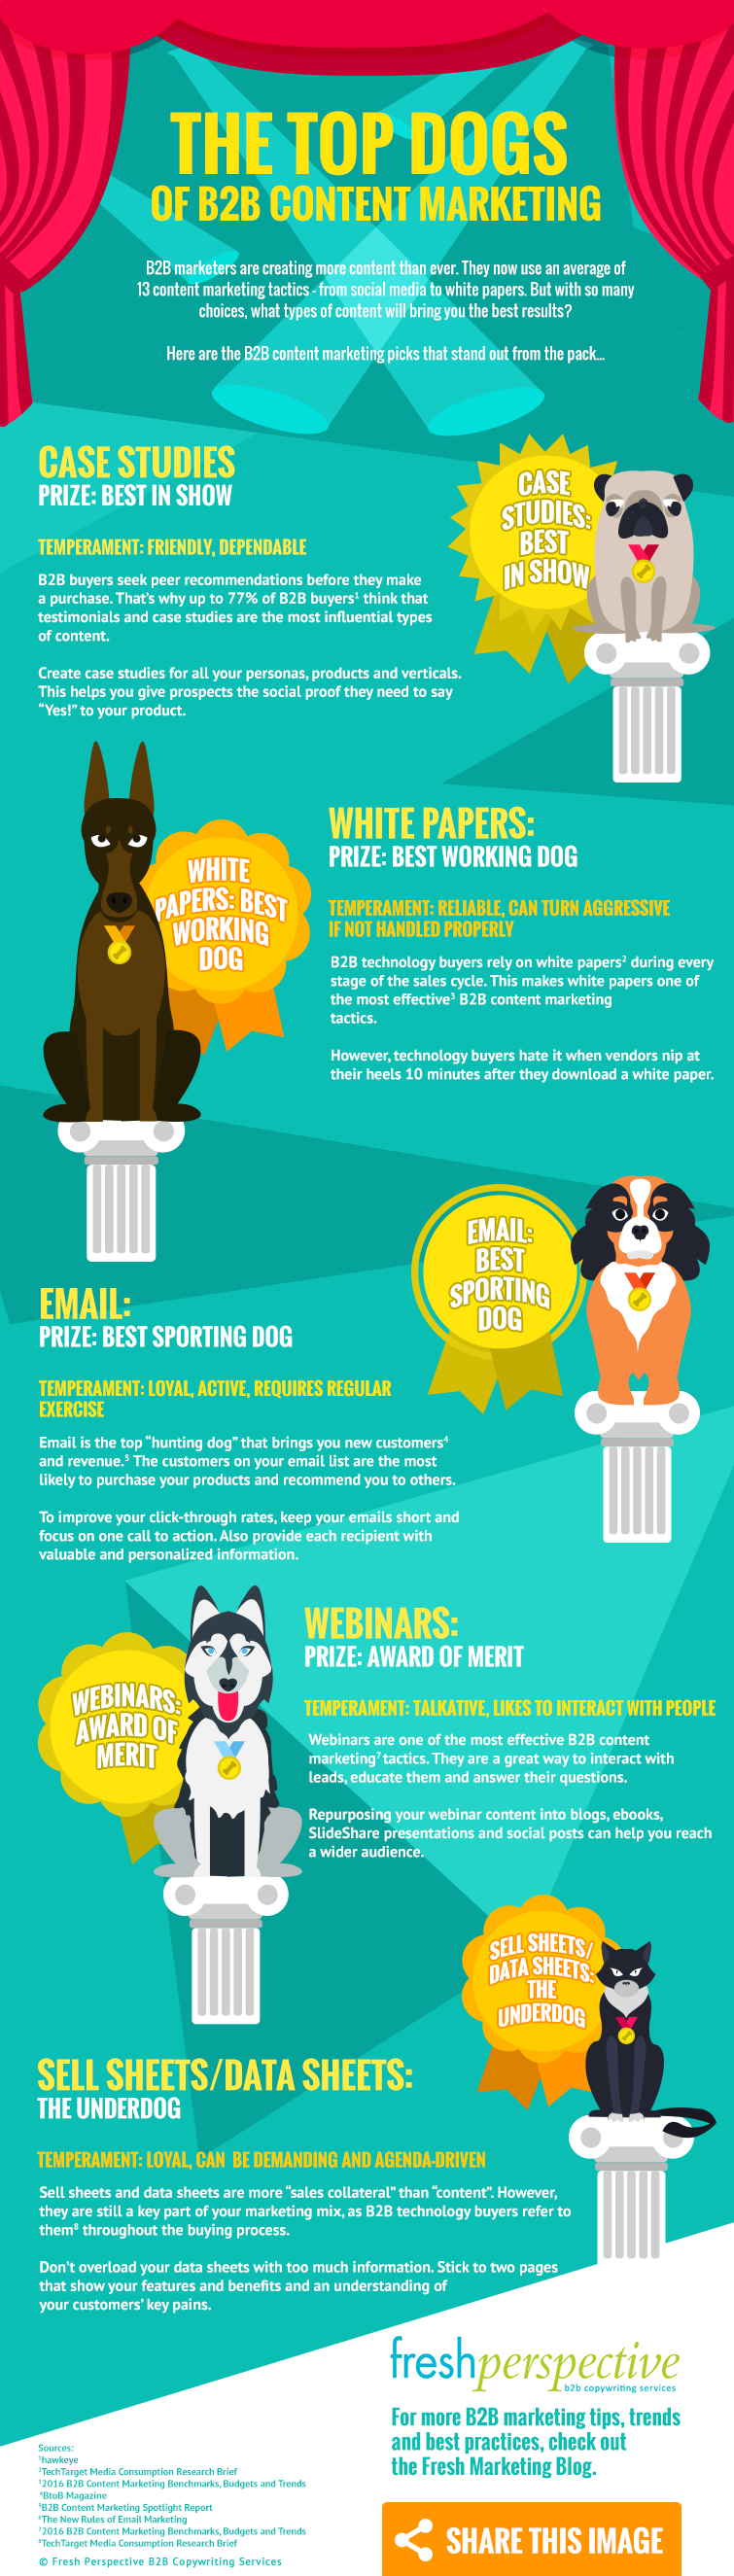 Top Dogs of Content Marketing